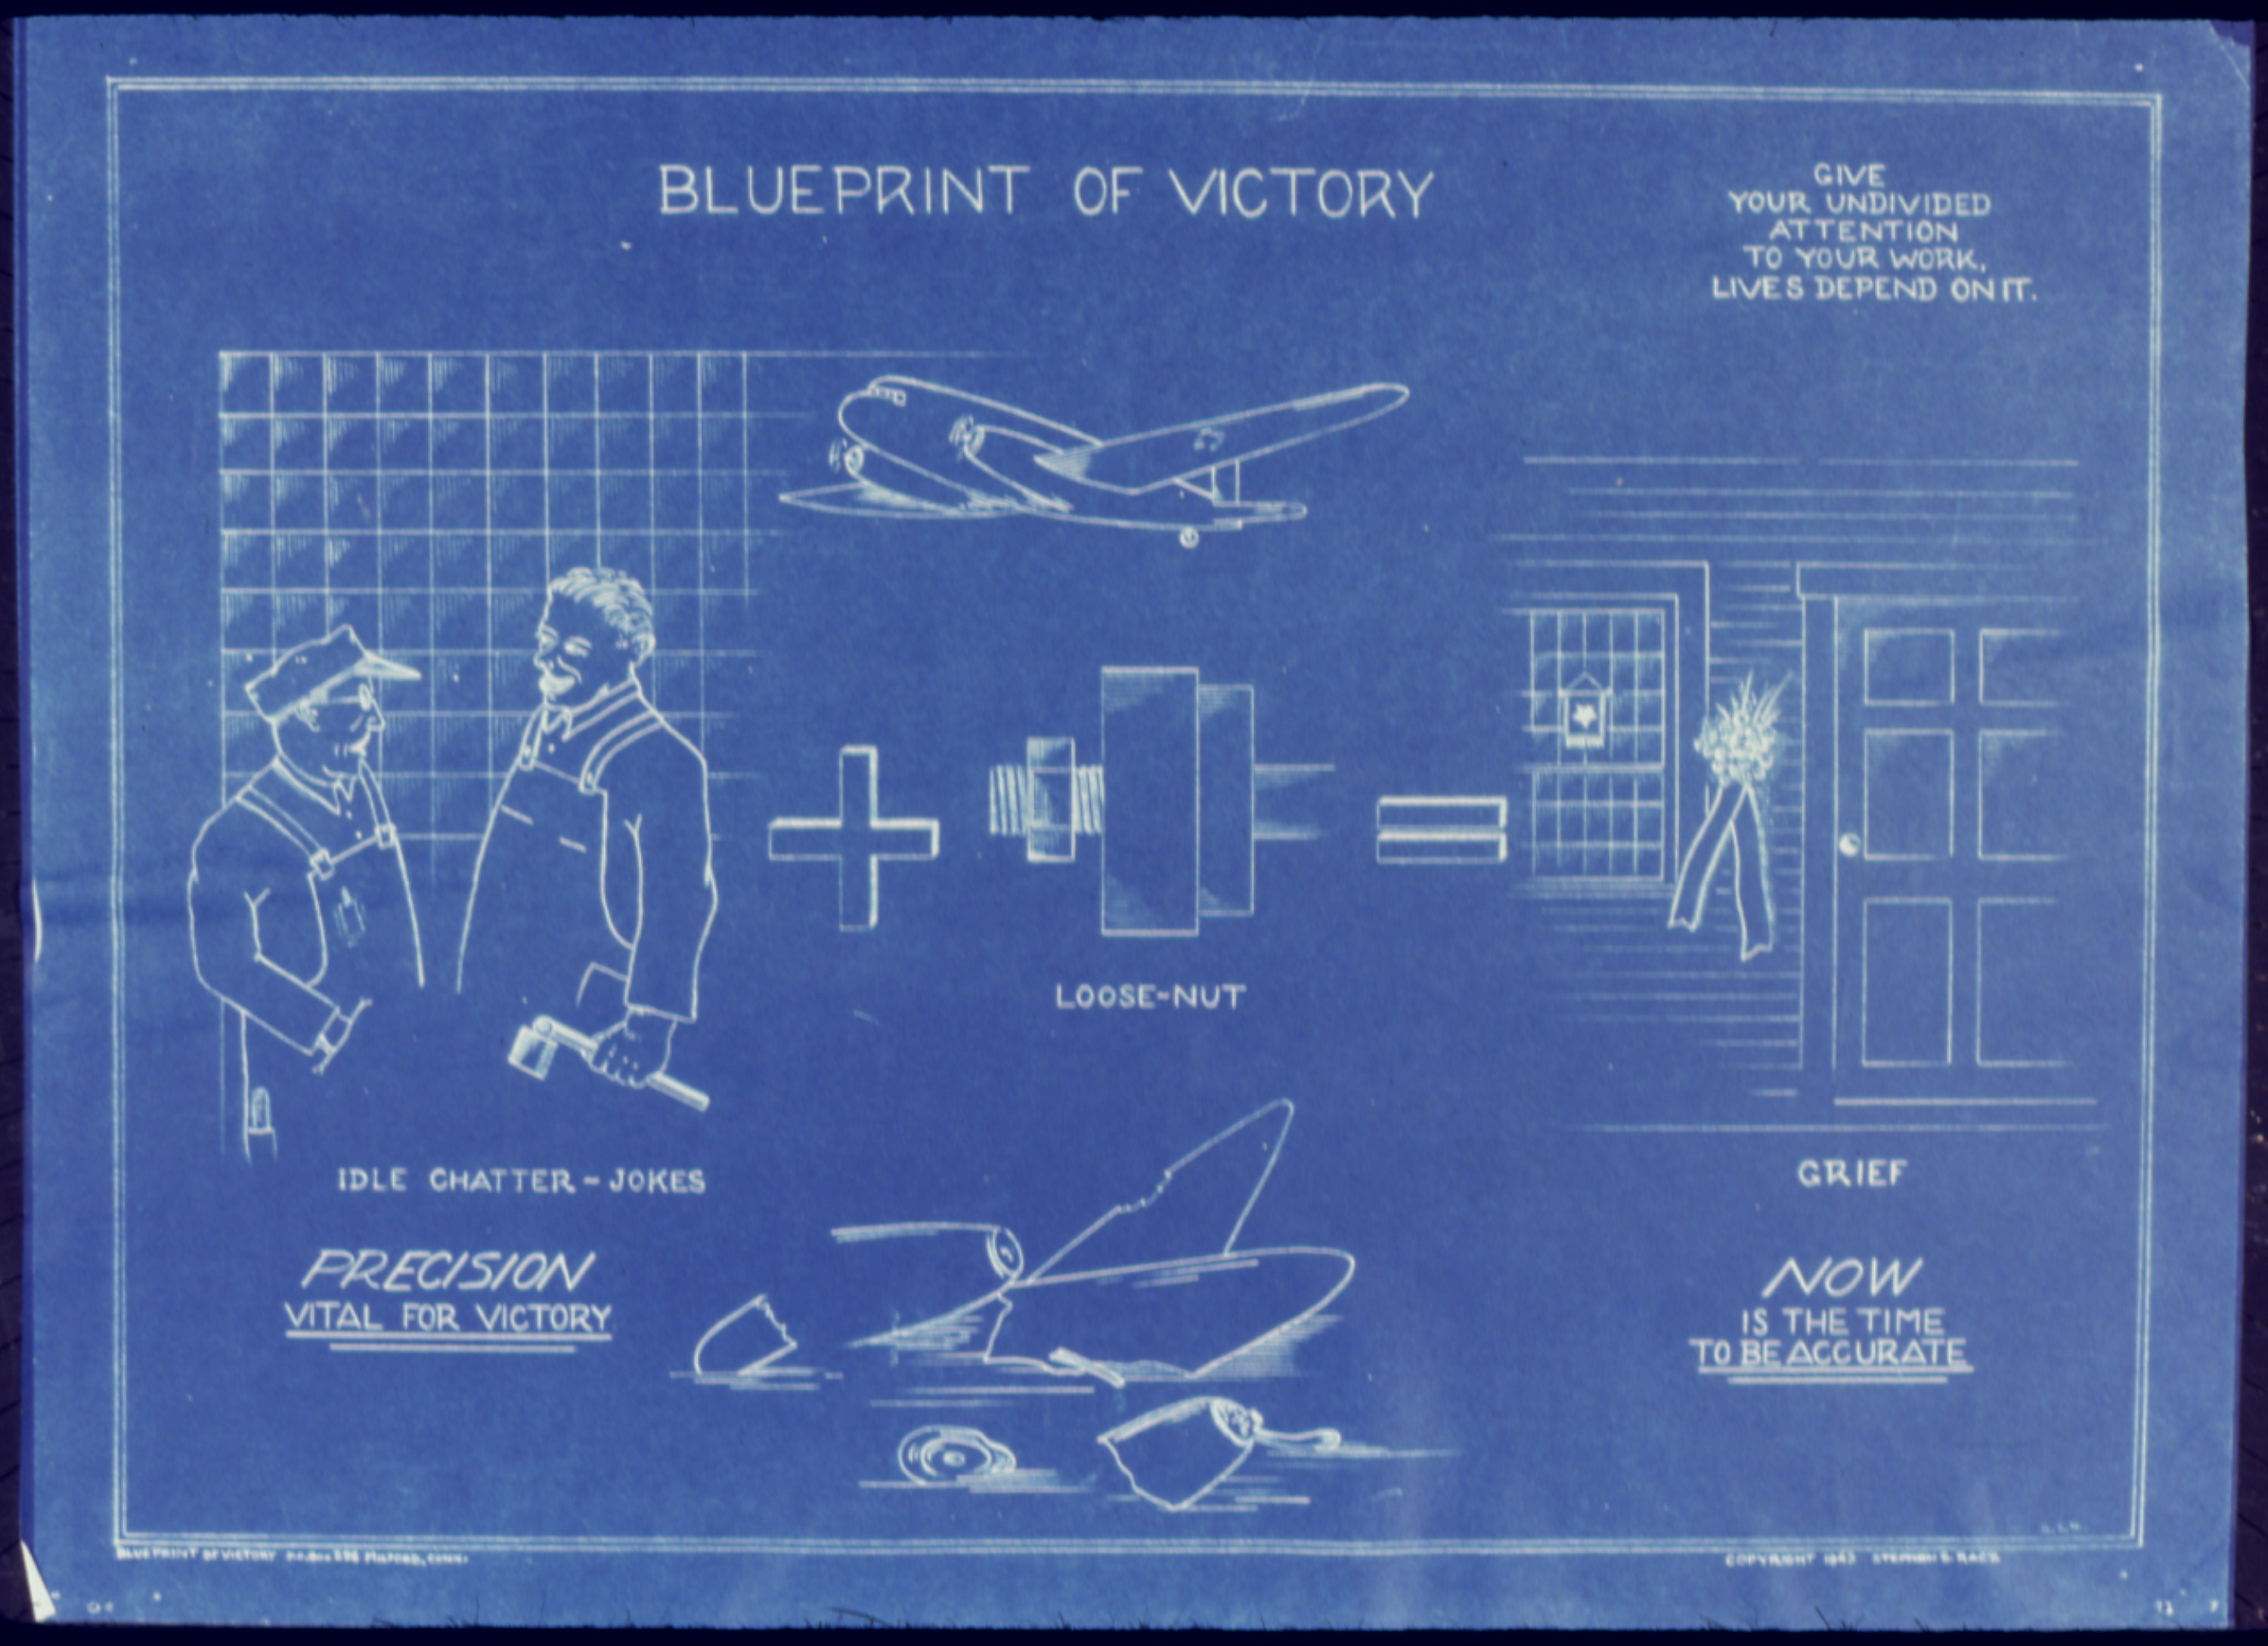 File:Blueprint of Victory - NARA - 534551.jpg - Wikimedia